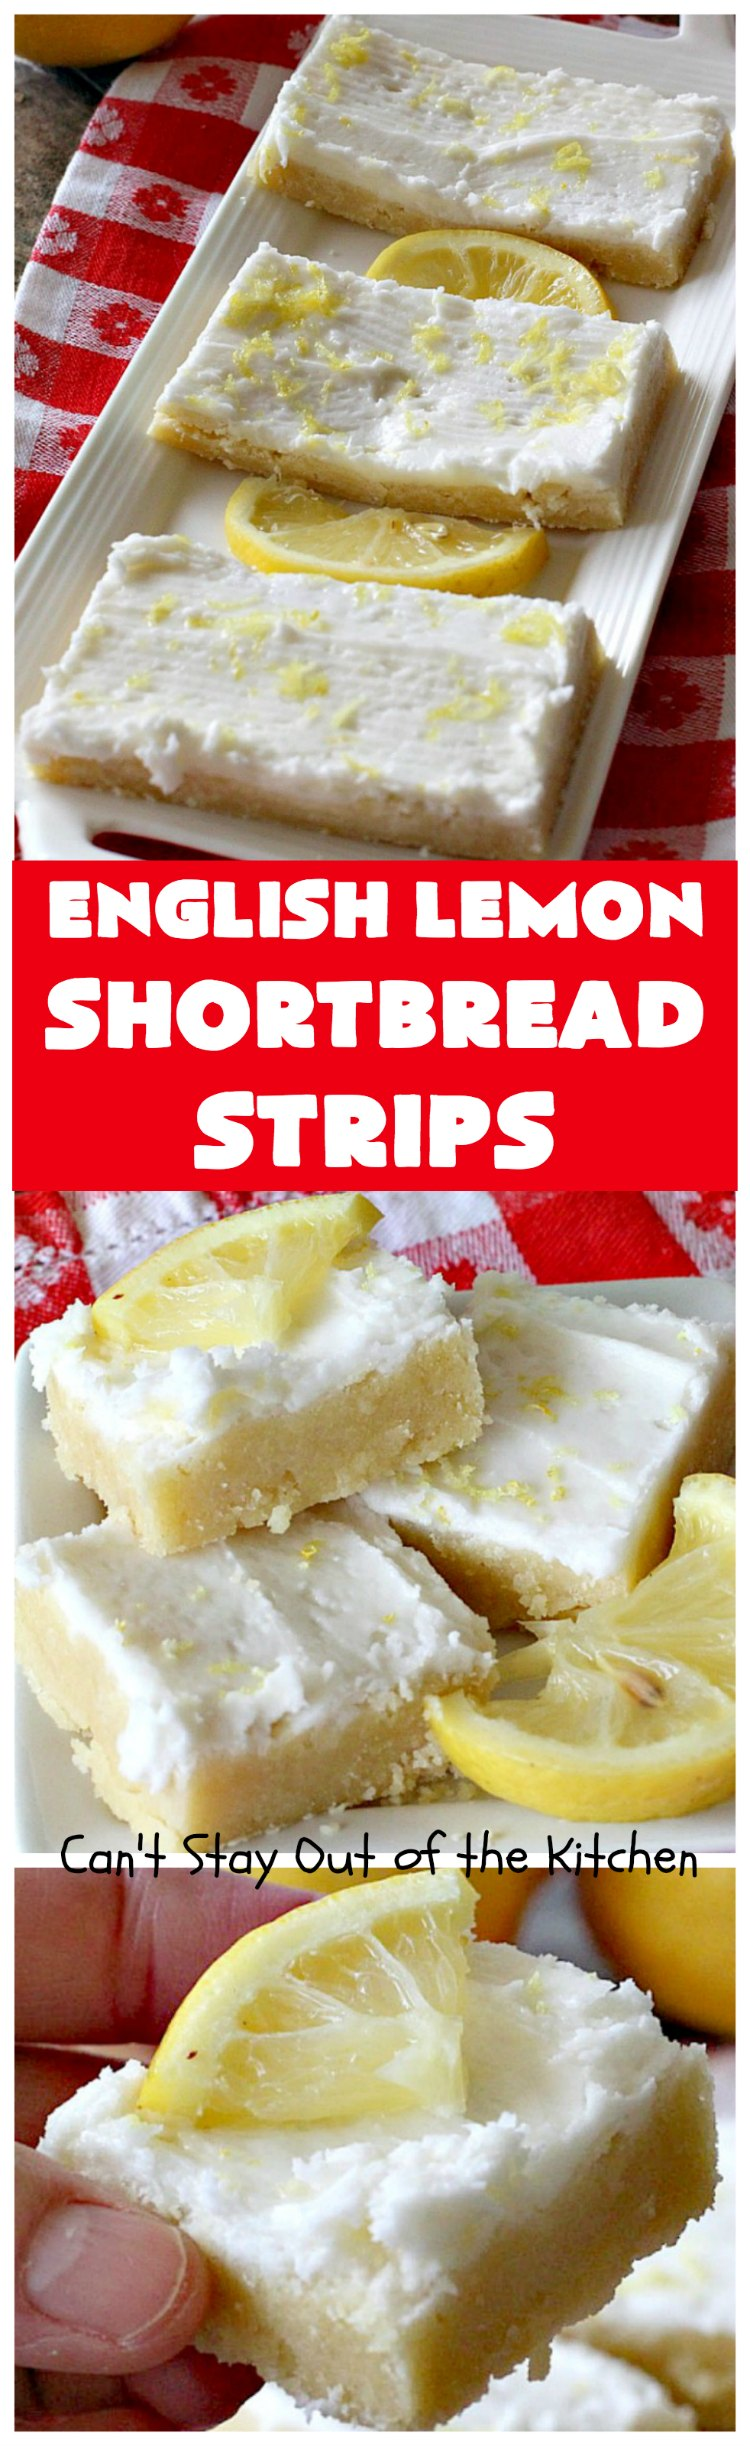 English Lemon Shortbread Strips   Can't Stay Out of the Kitchen